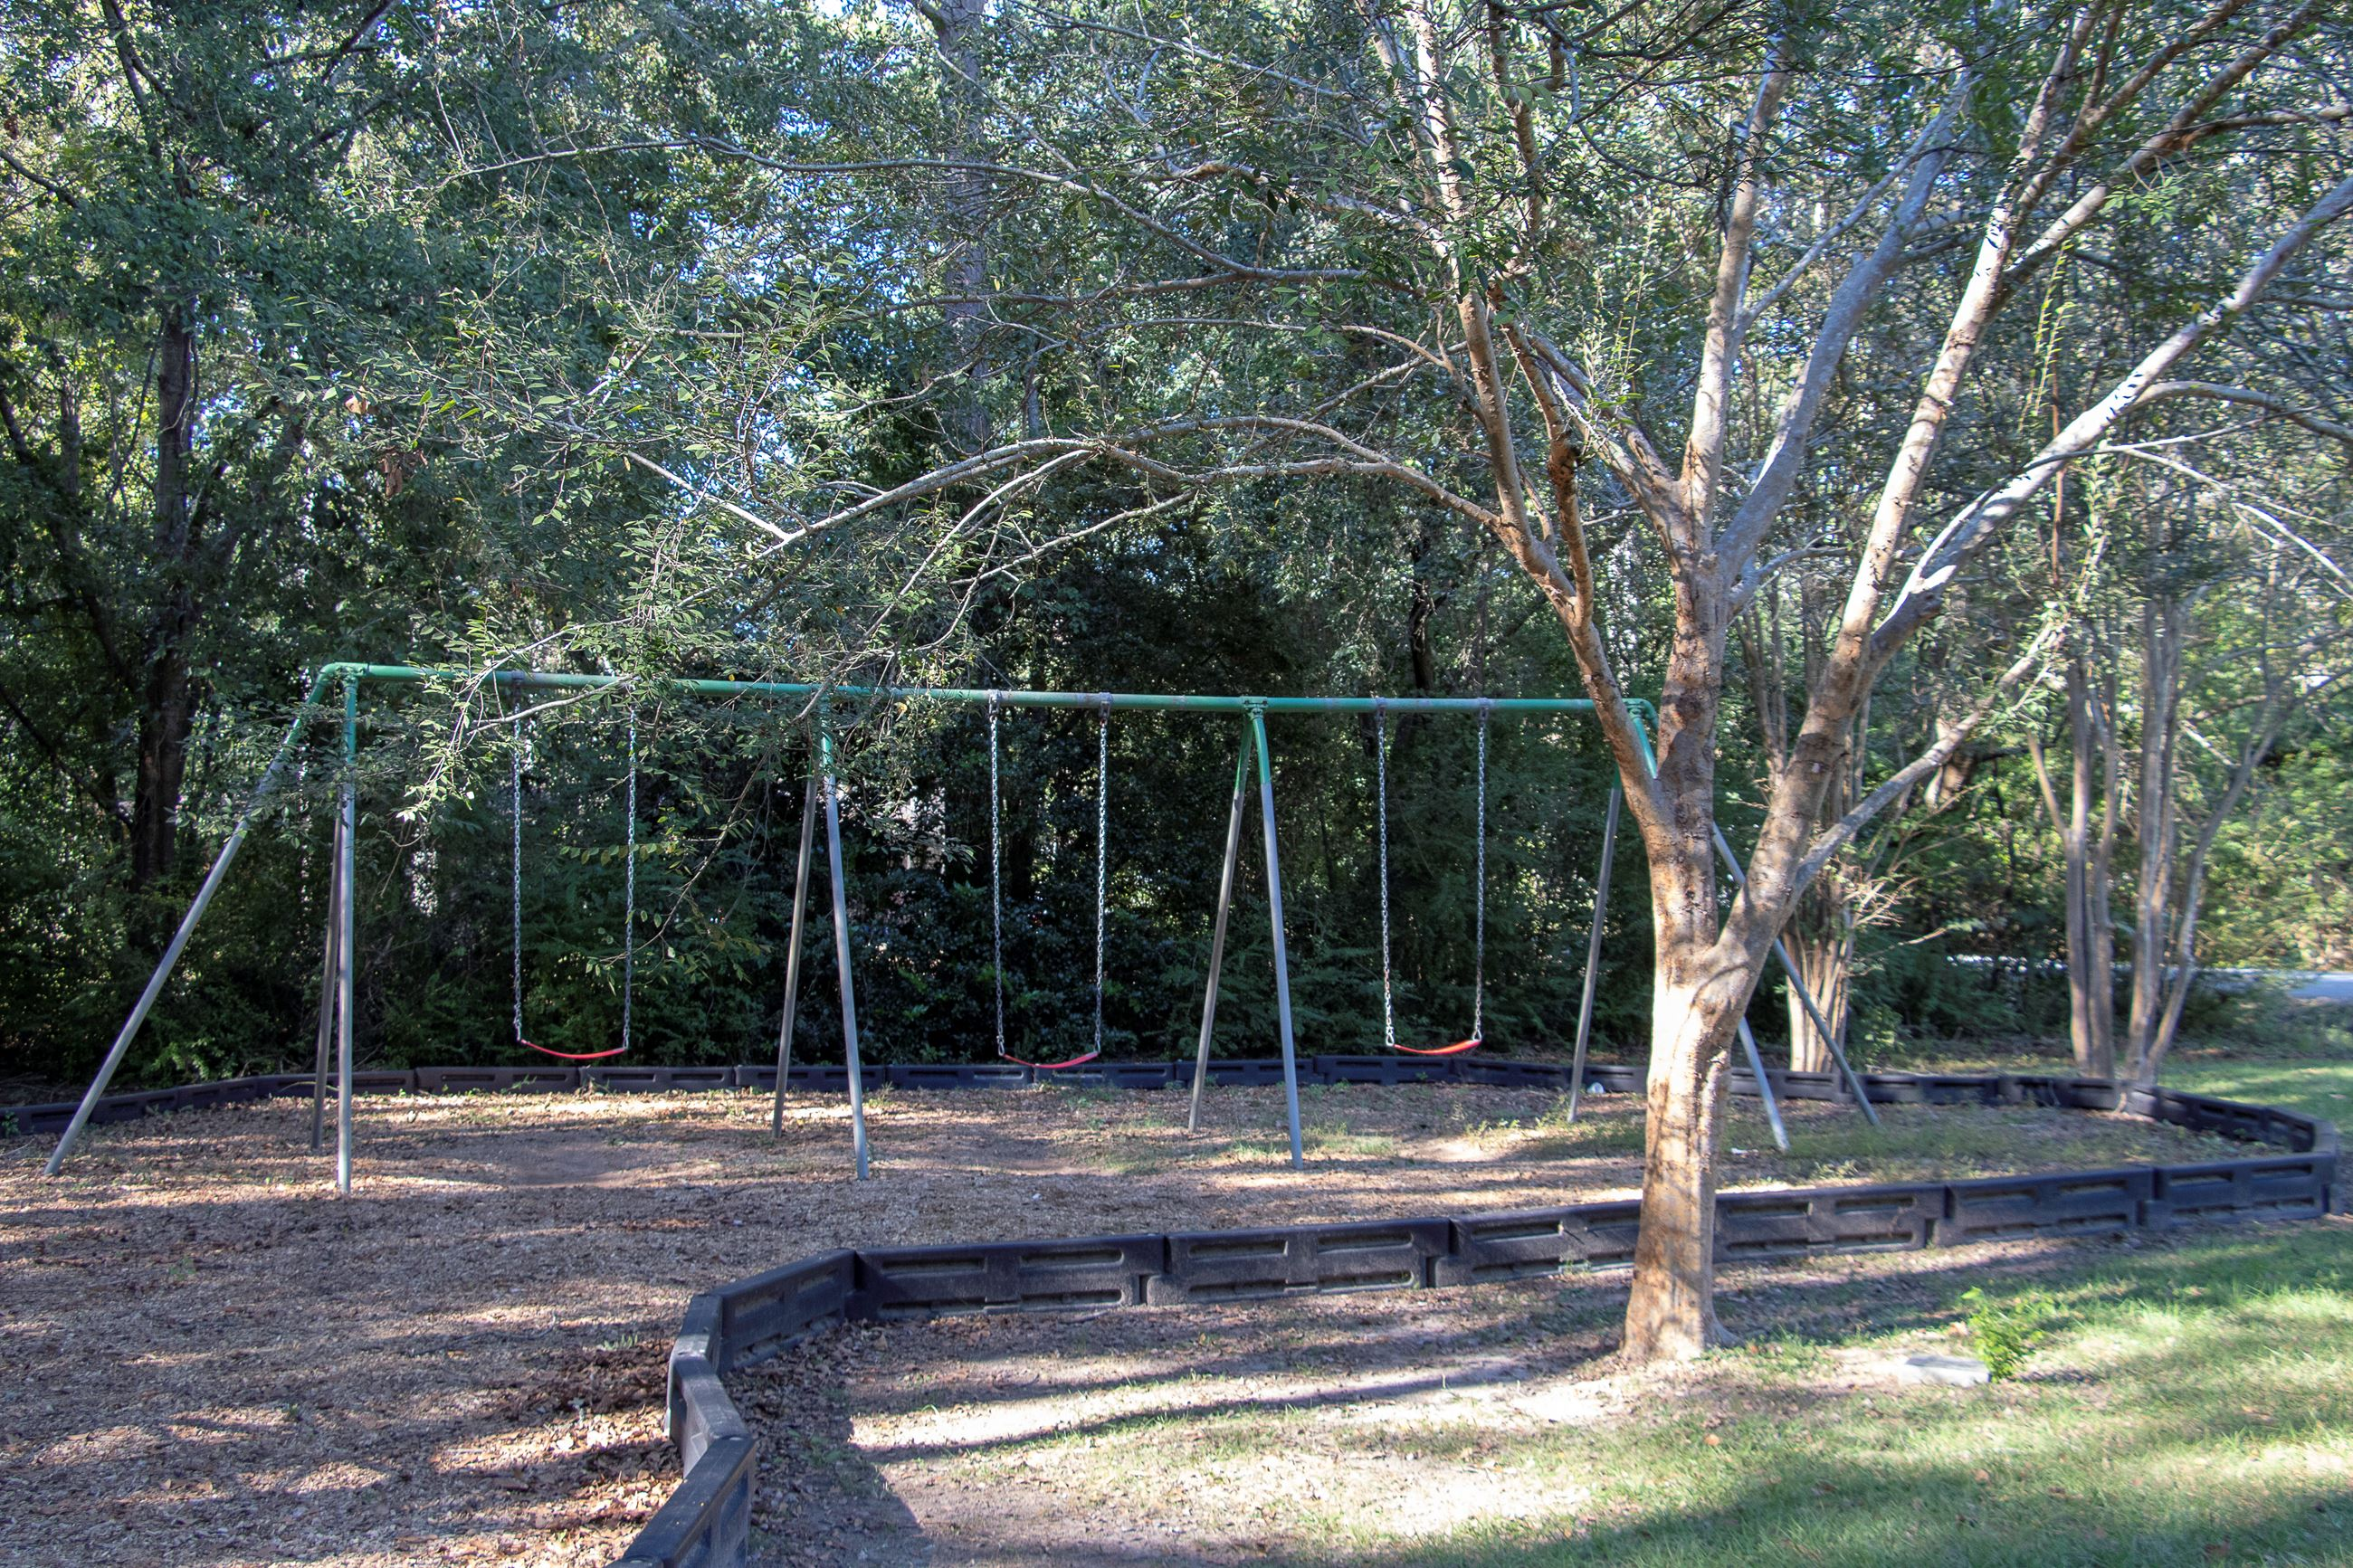 An image of a swing set in a park.